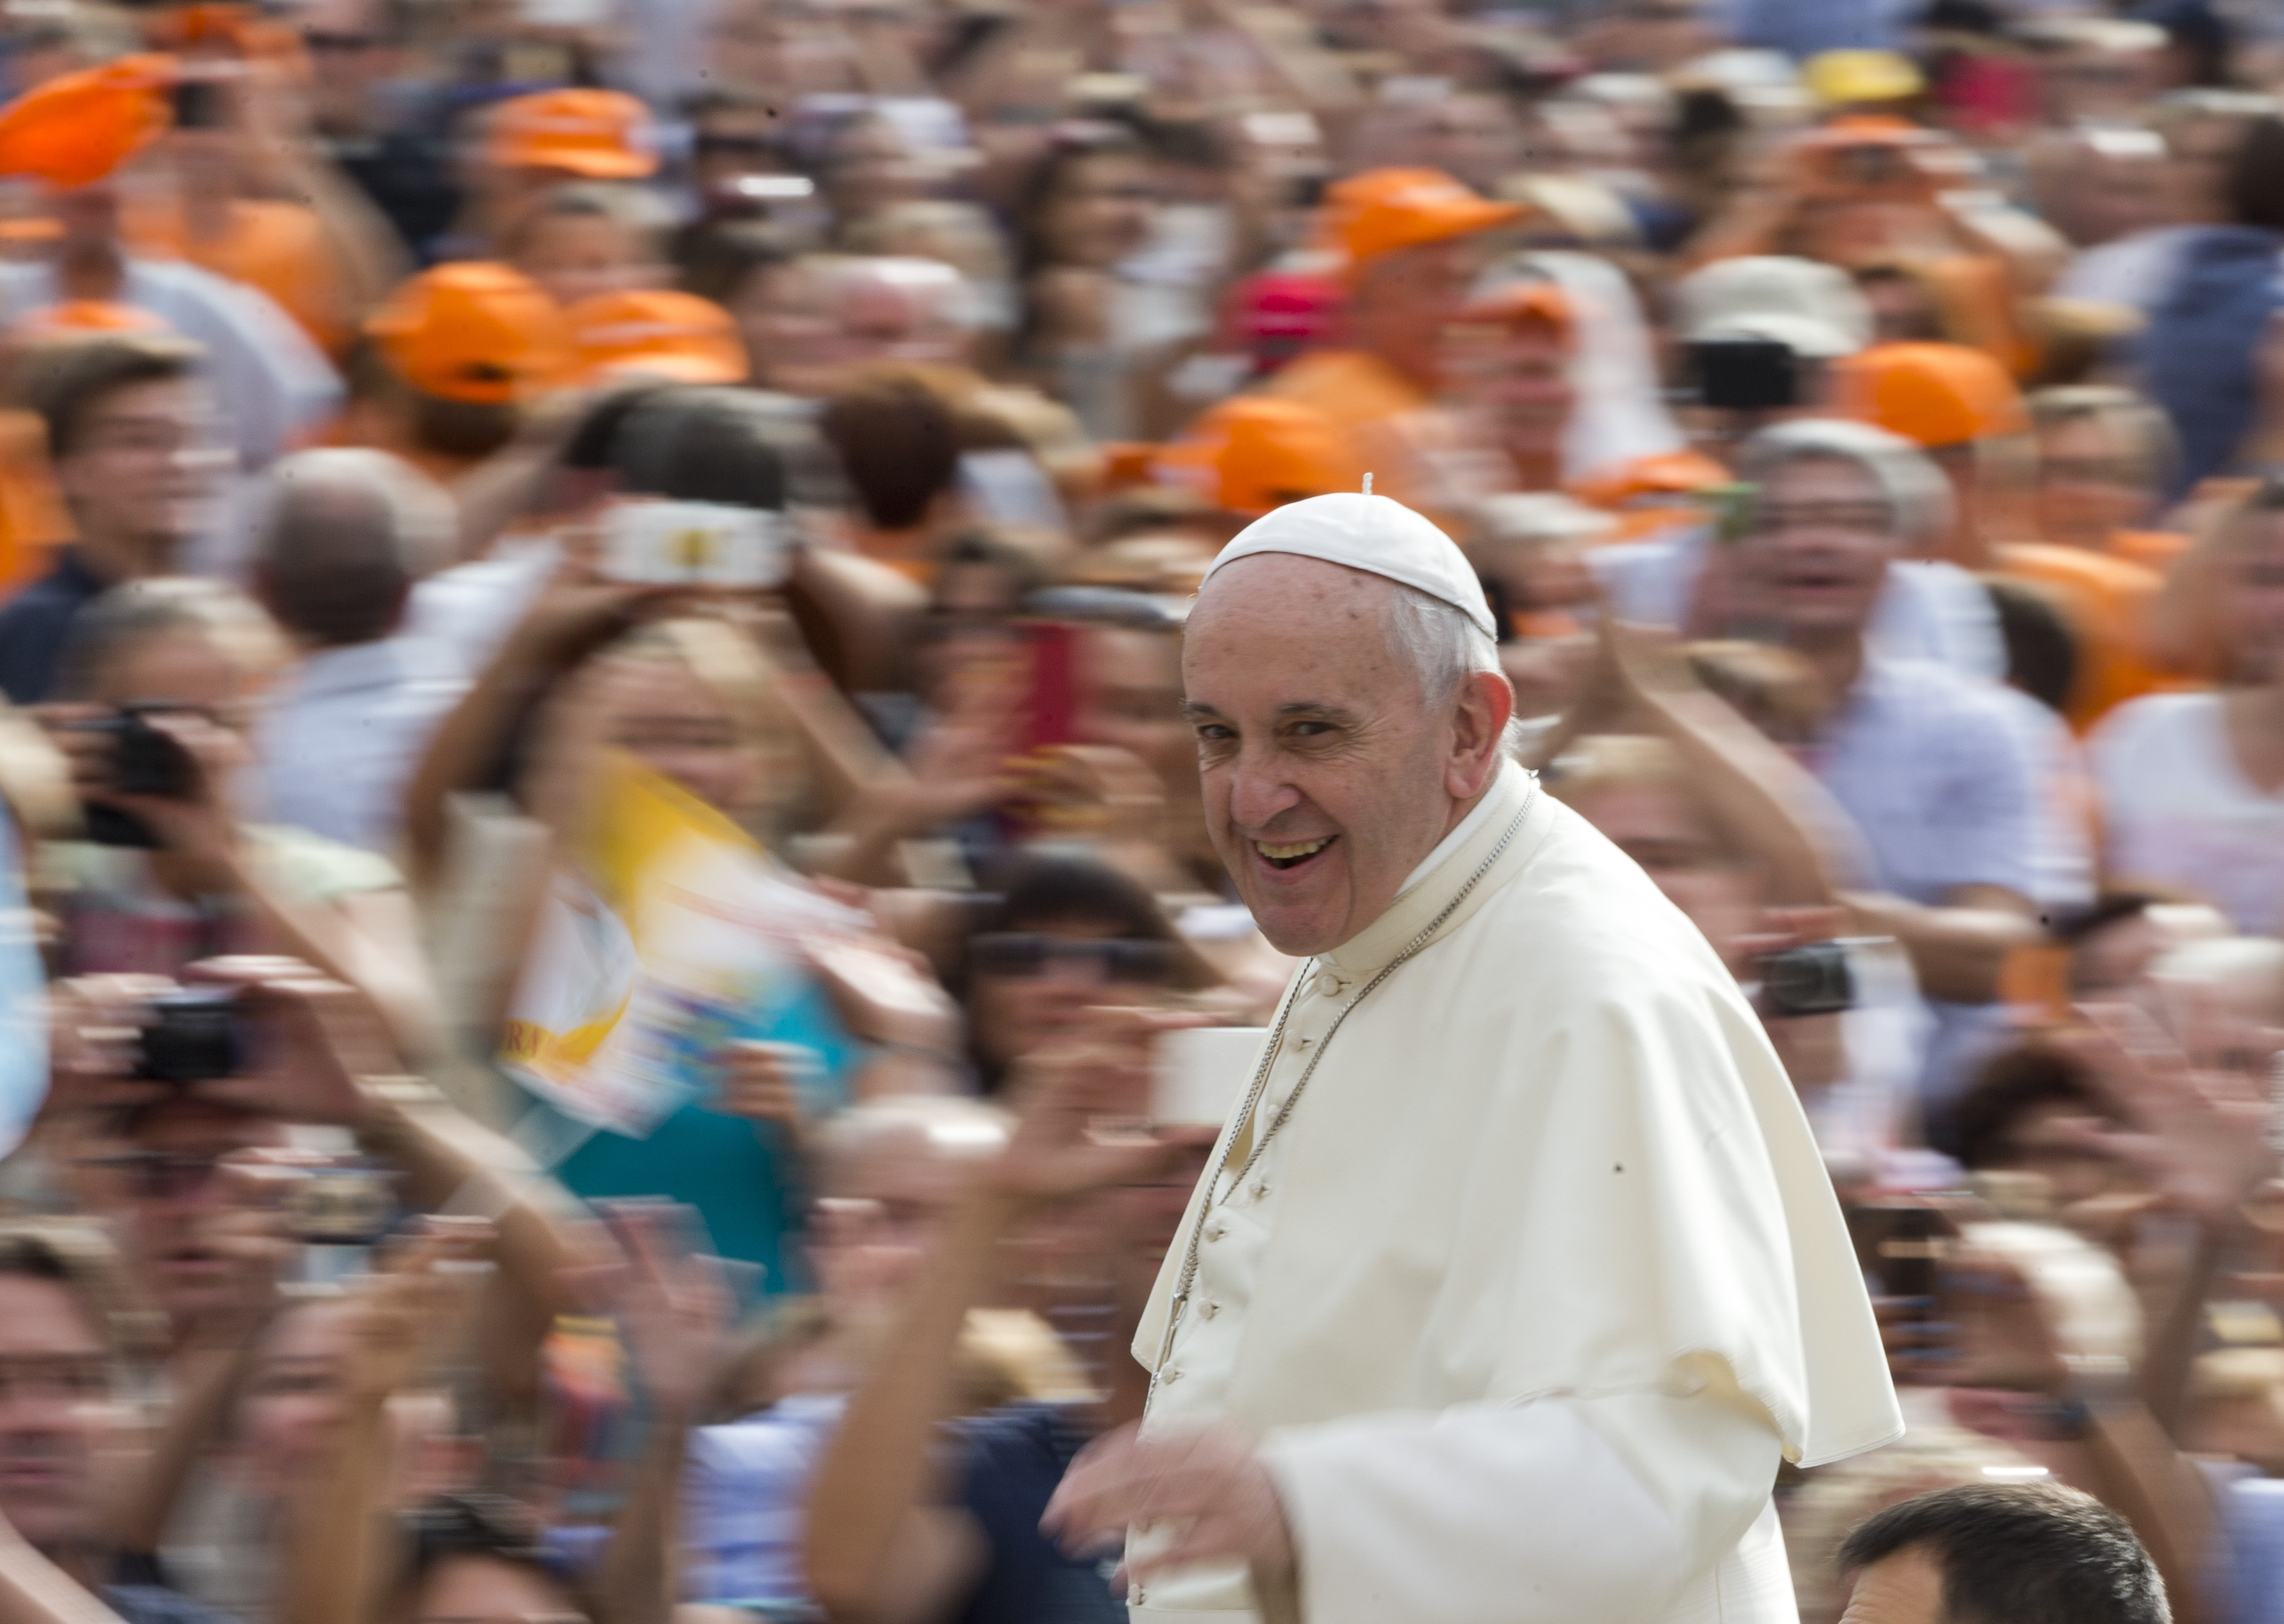 Federal employees encouraged to work from home during papal visit